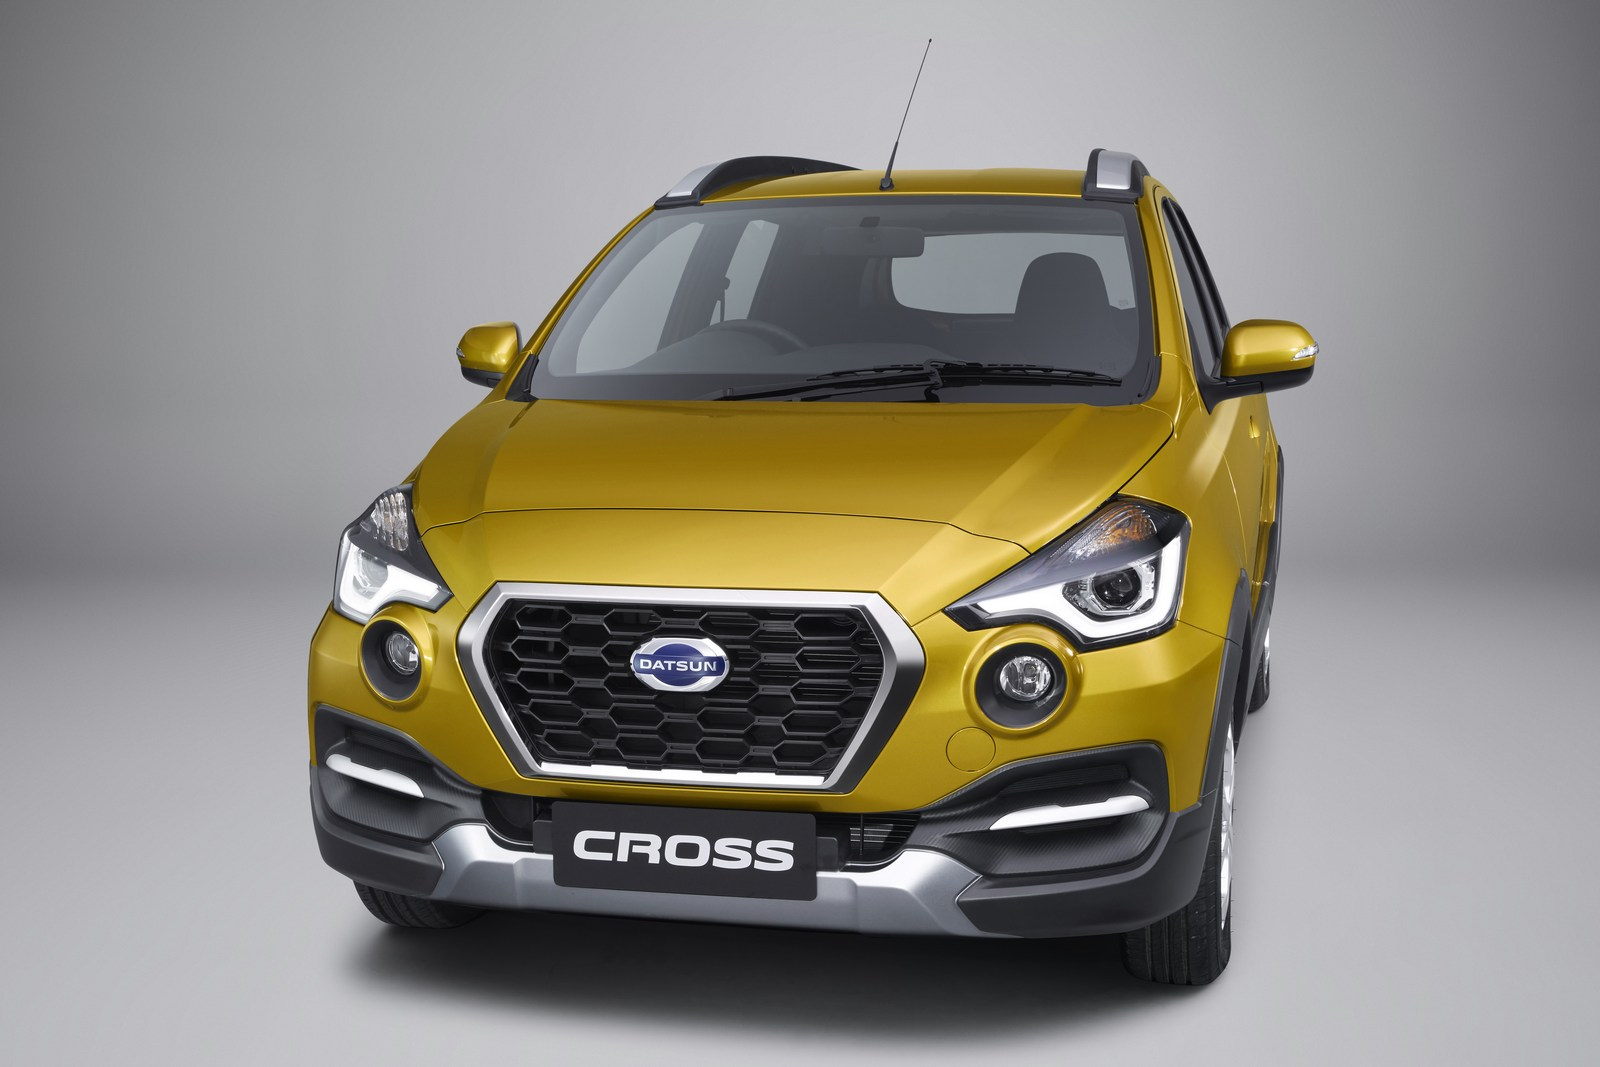 Datsun Cross Unveiled As The Brand's First Crossover ...